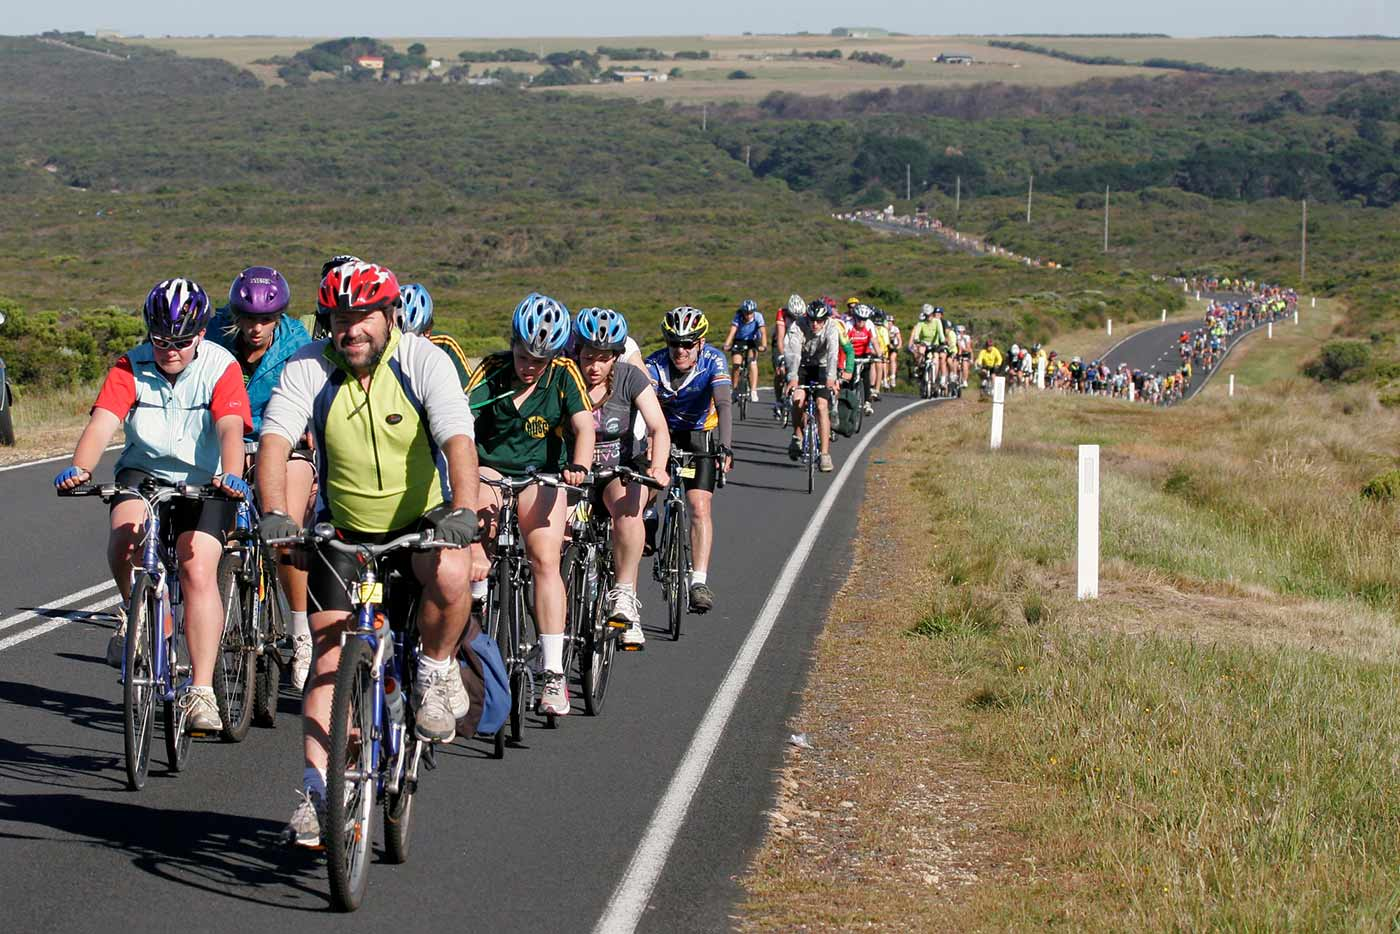 A group of cyclists on travelling along a road through countryside. - click to view larger image